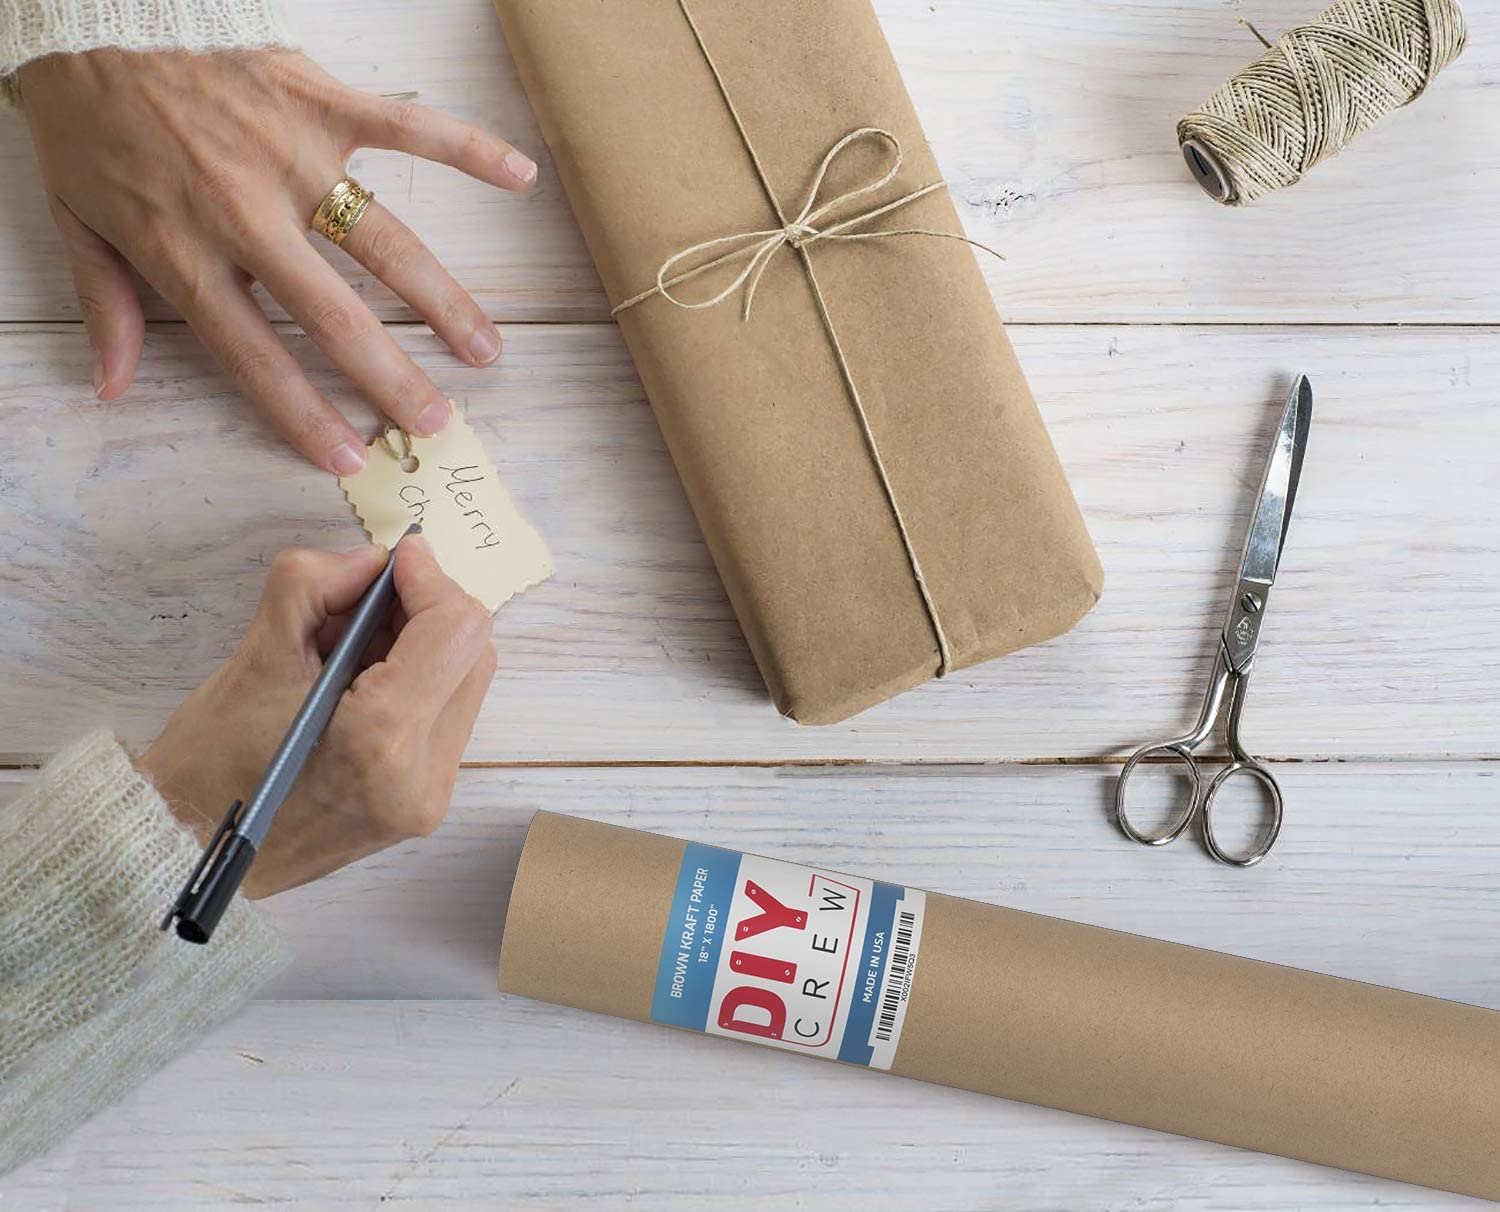 Brown Kraft Paper Roll 30? x 150ft 100/% Recycled Material 1800 inches Surface Covering Proudly Made in The USA Shipping Packing Gift Wrapping Postal Multi-Use for Crafts Single Roll